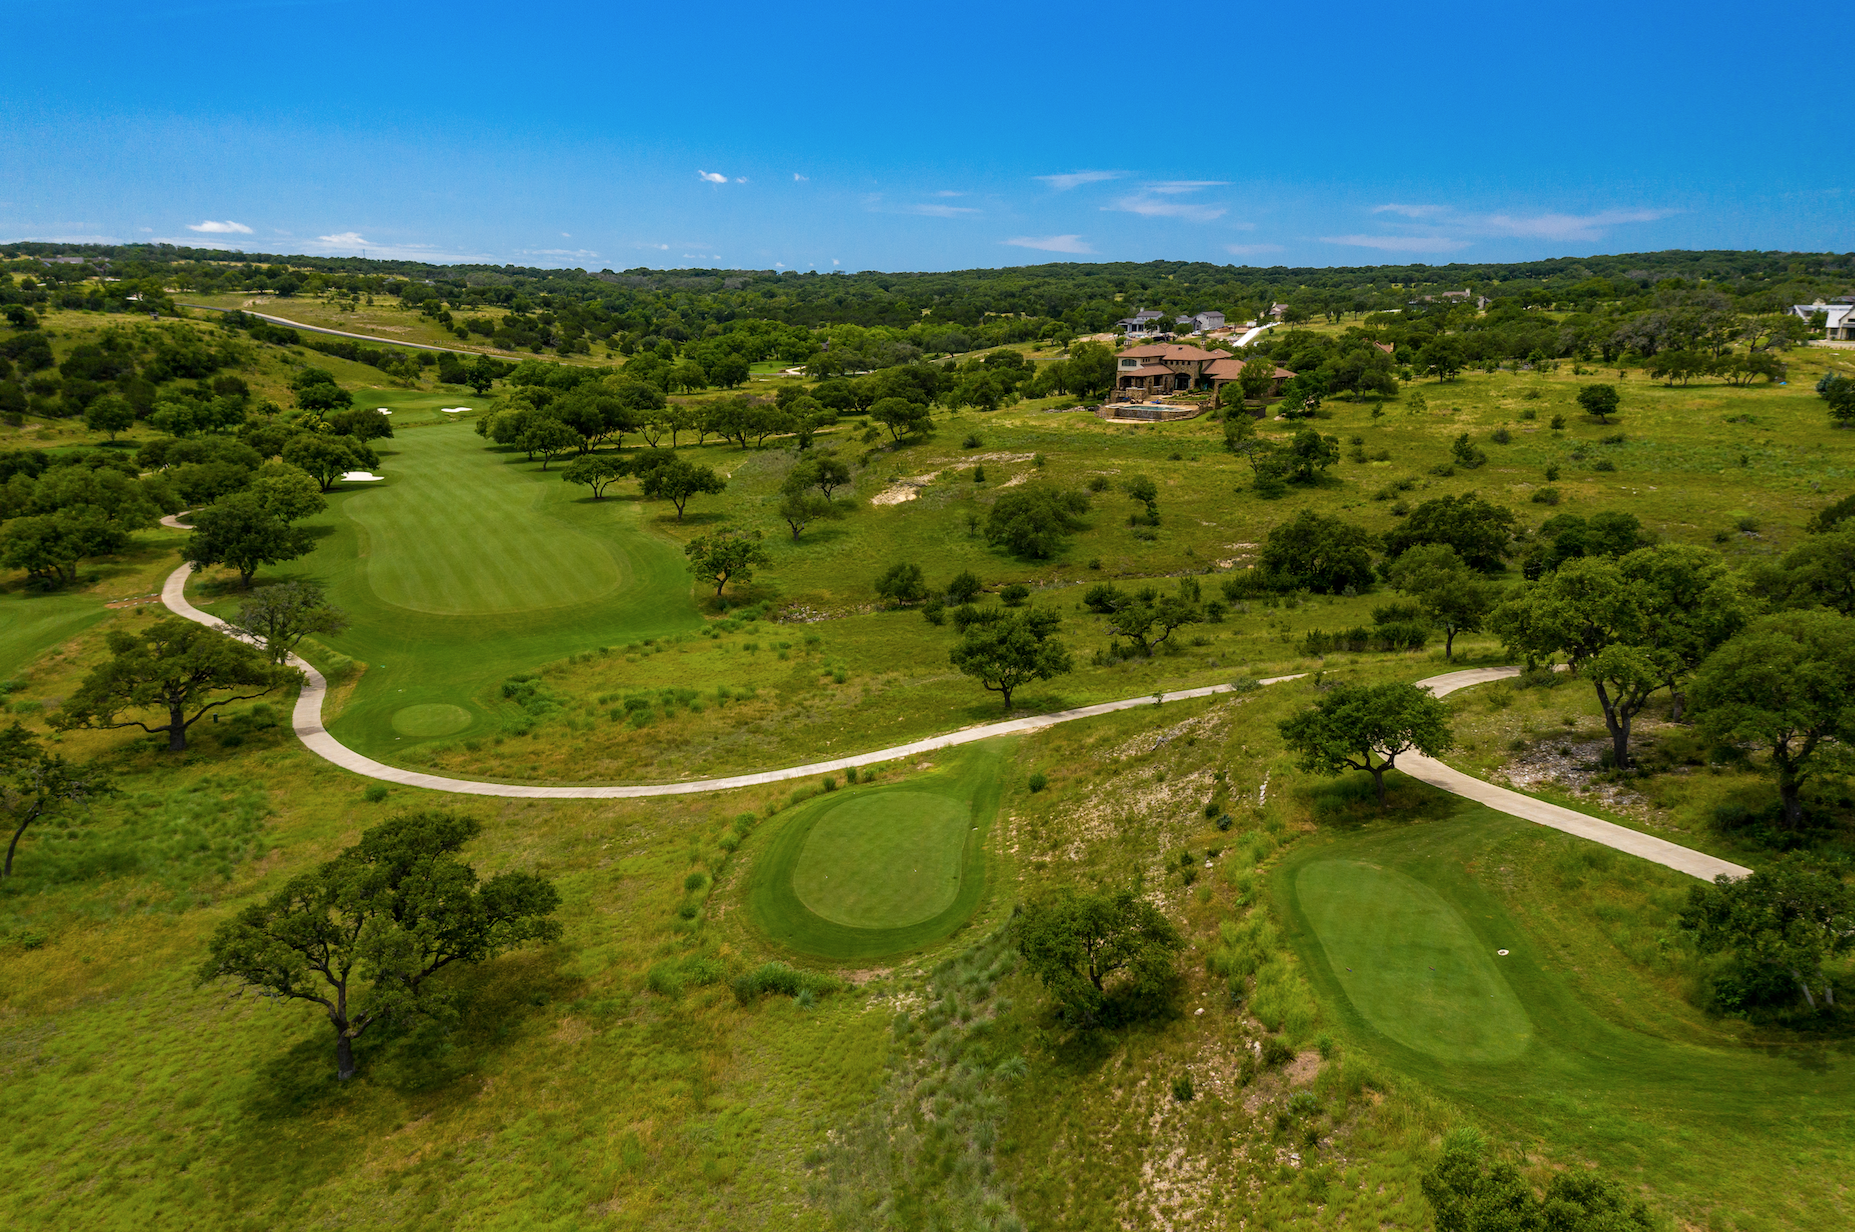 Private Club Community Texas Hill Country Homesteads Boot Ranch In 2020 Texas Hill Country Hill Country Homes Texas Homes For Sale